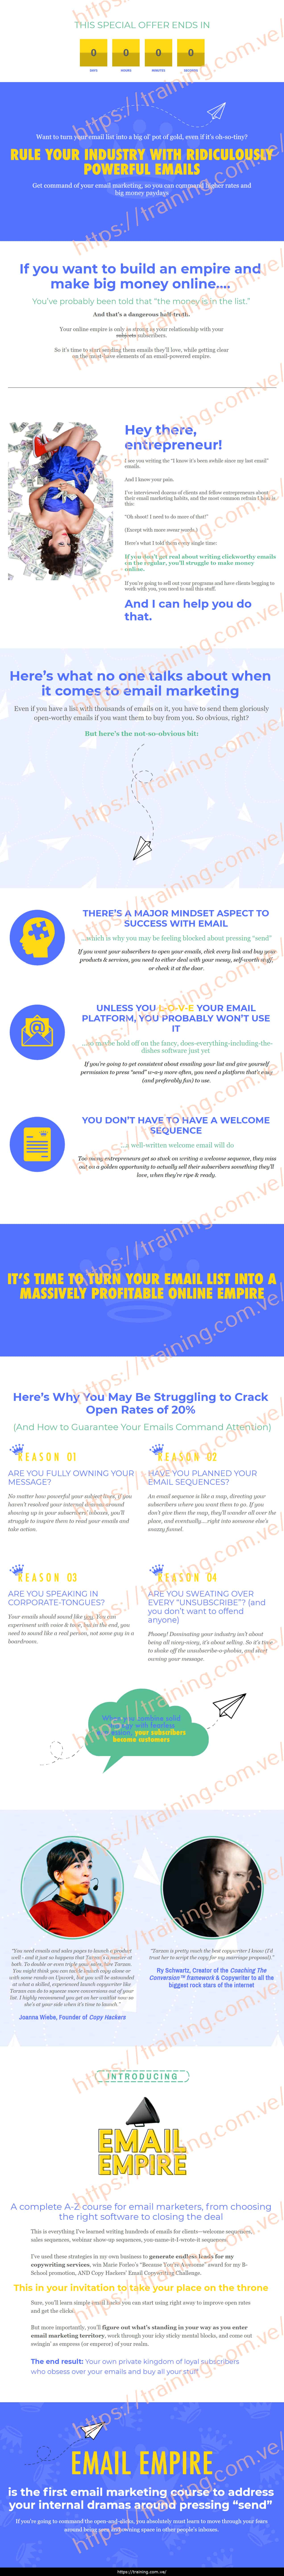 Email Empire by Tarzan Kay Sales Page